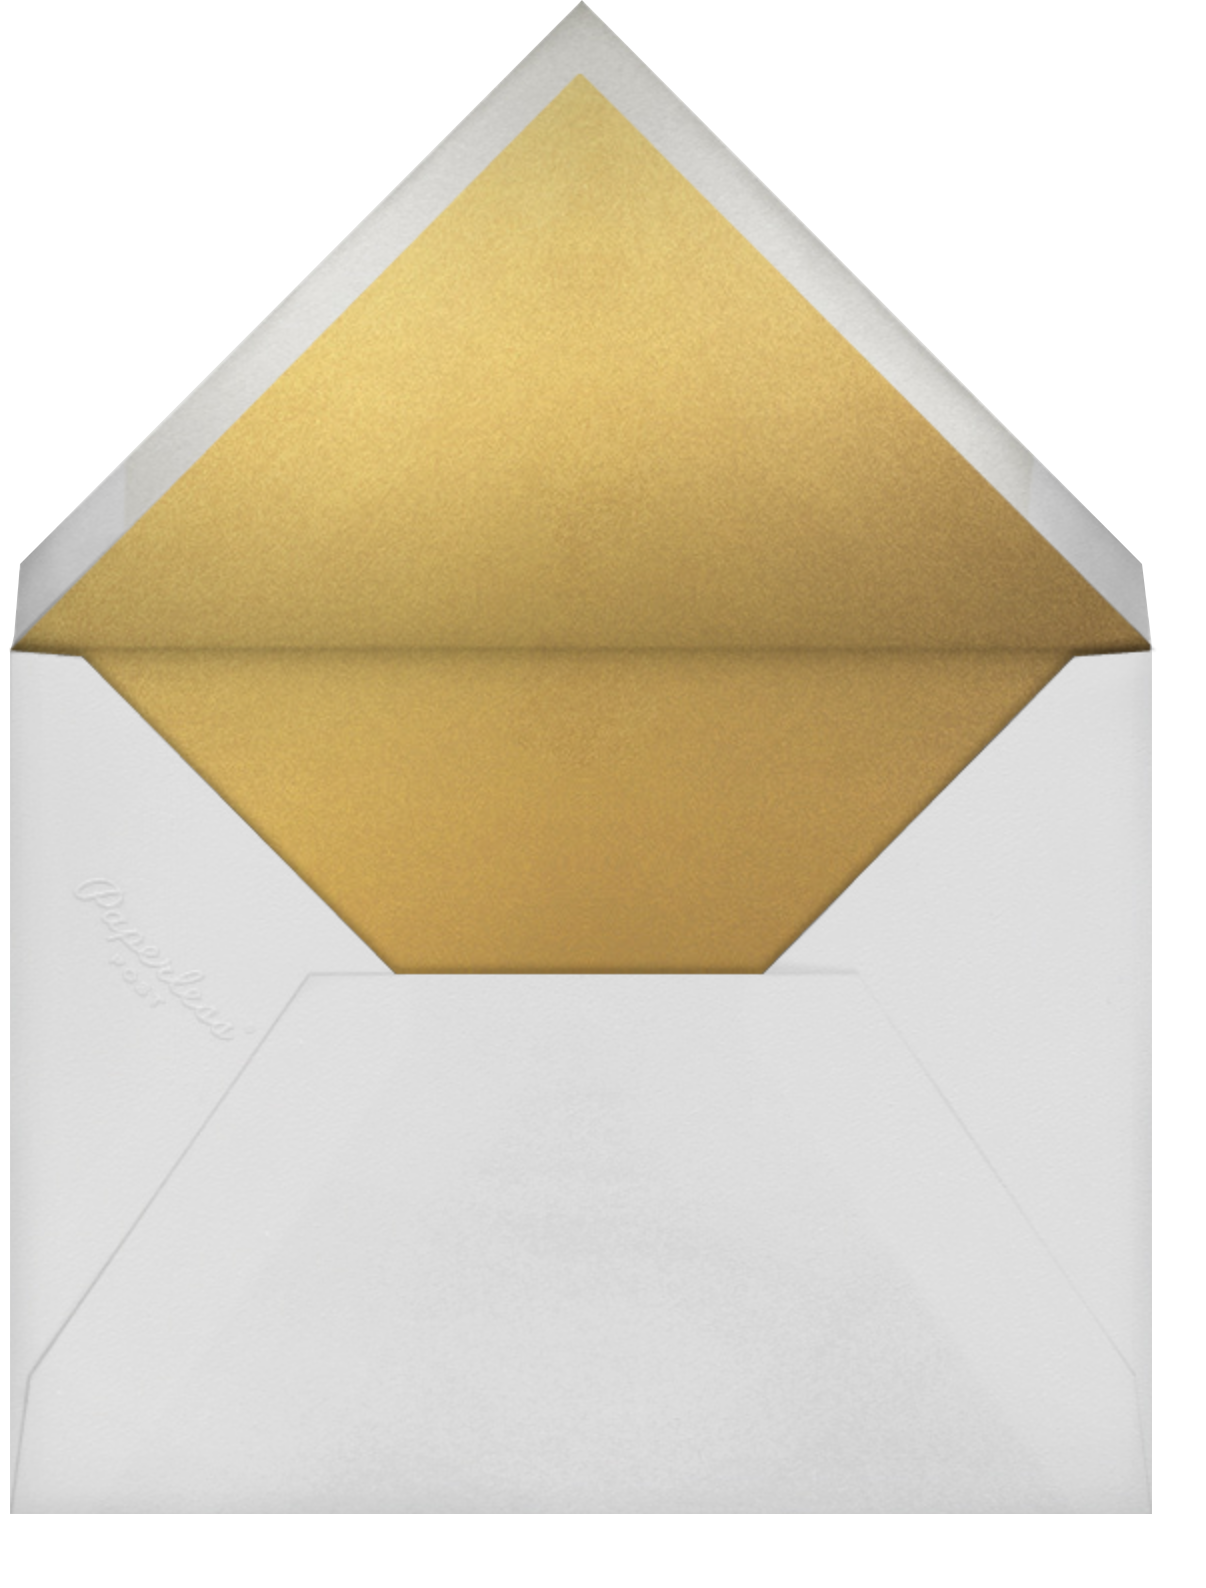 Wreath of Stars - Red - Paperless Post - Envelope